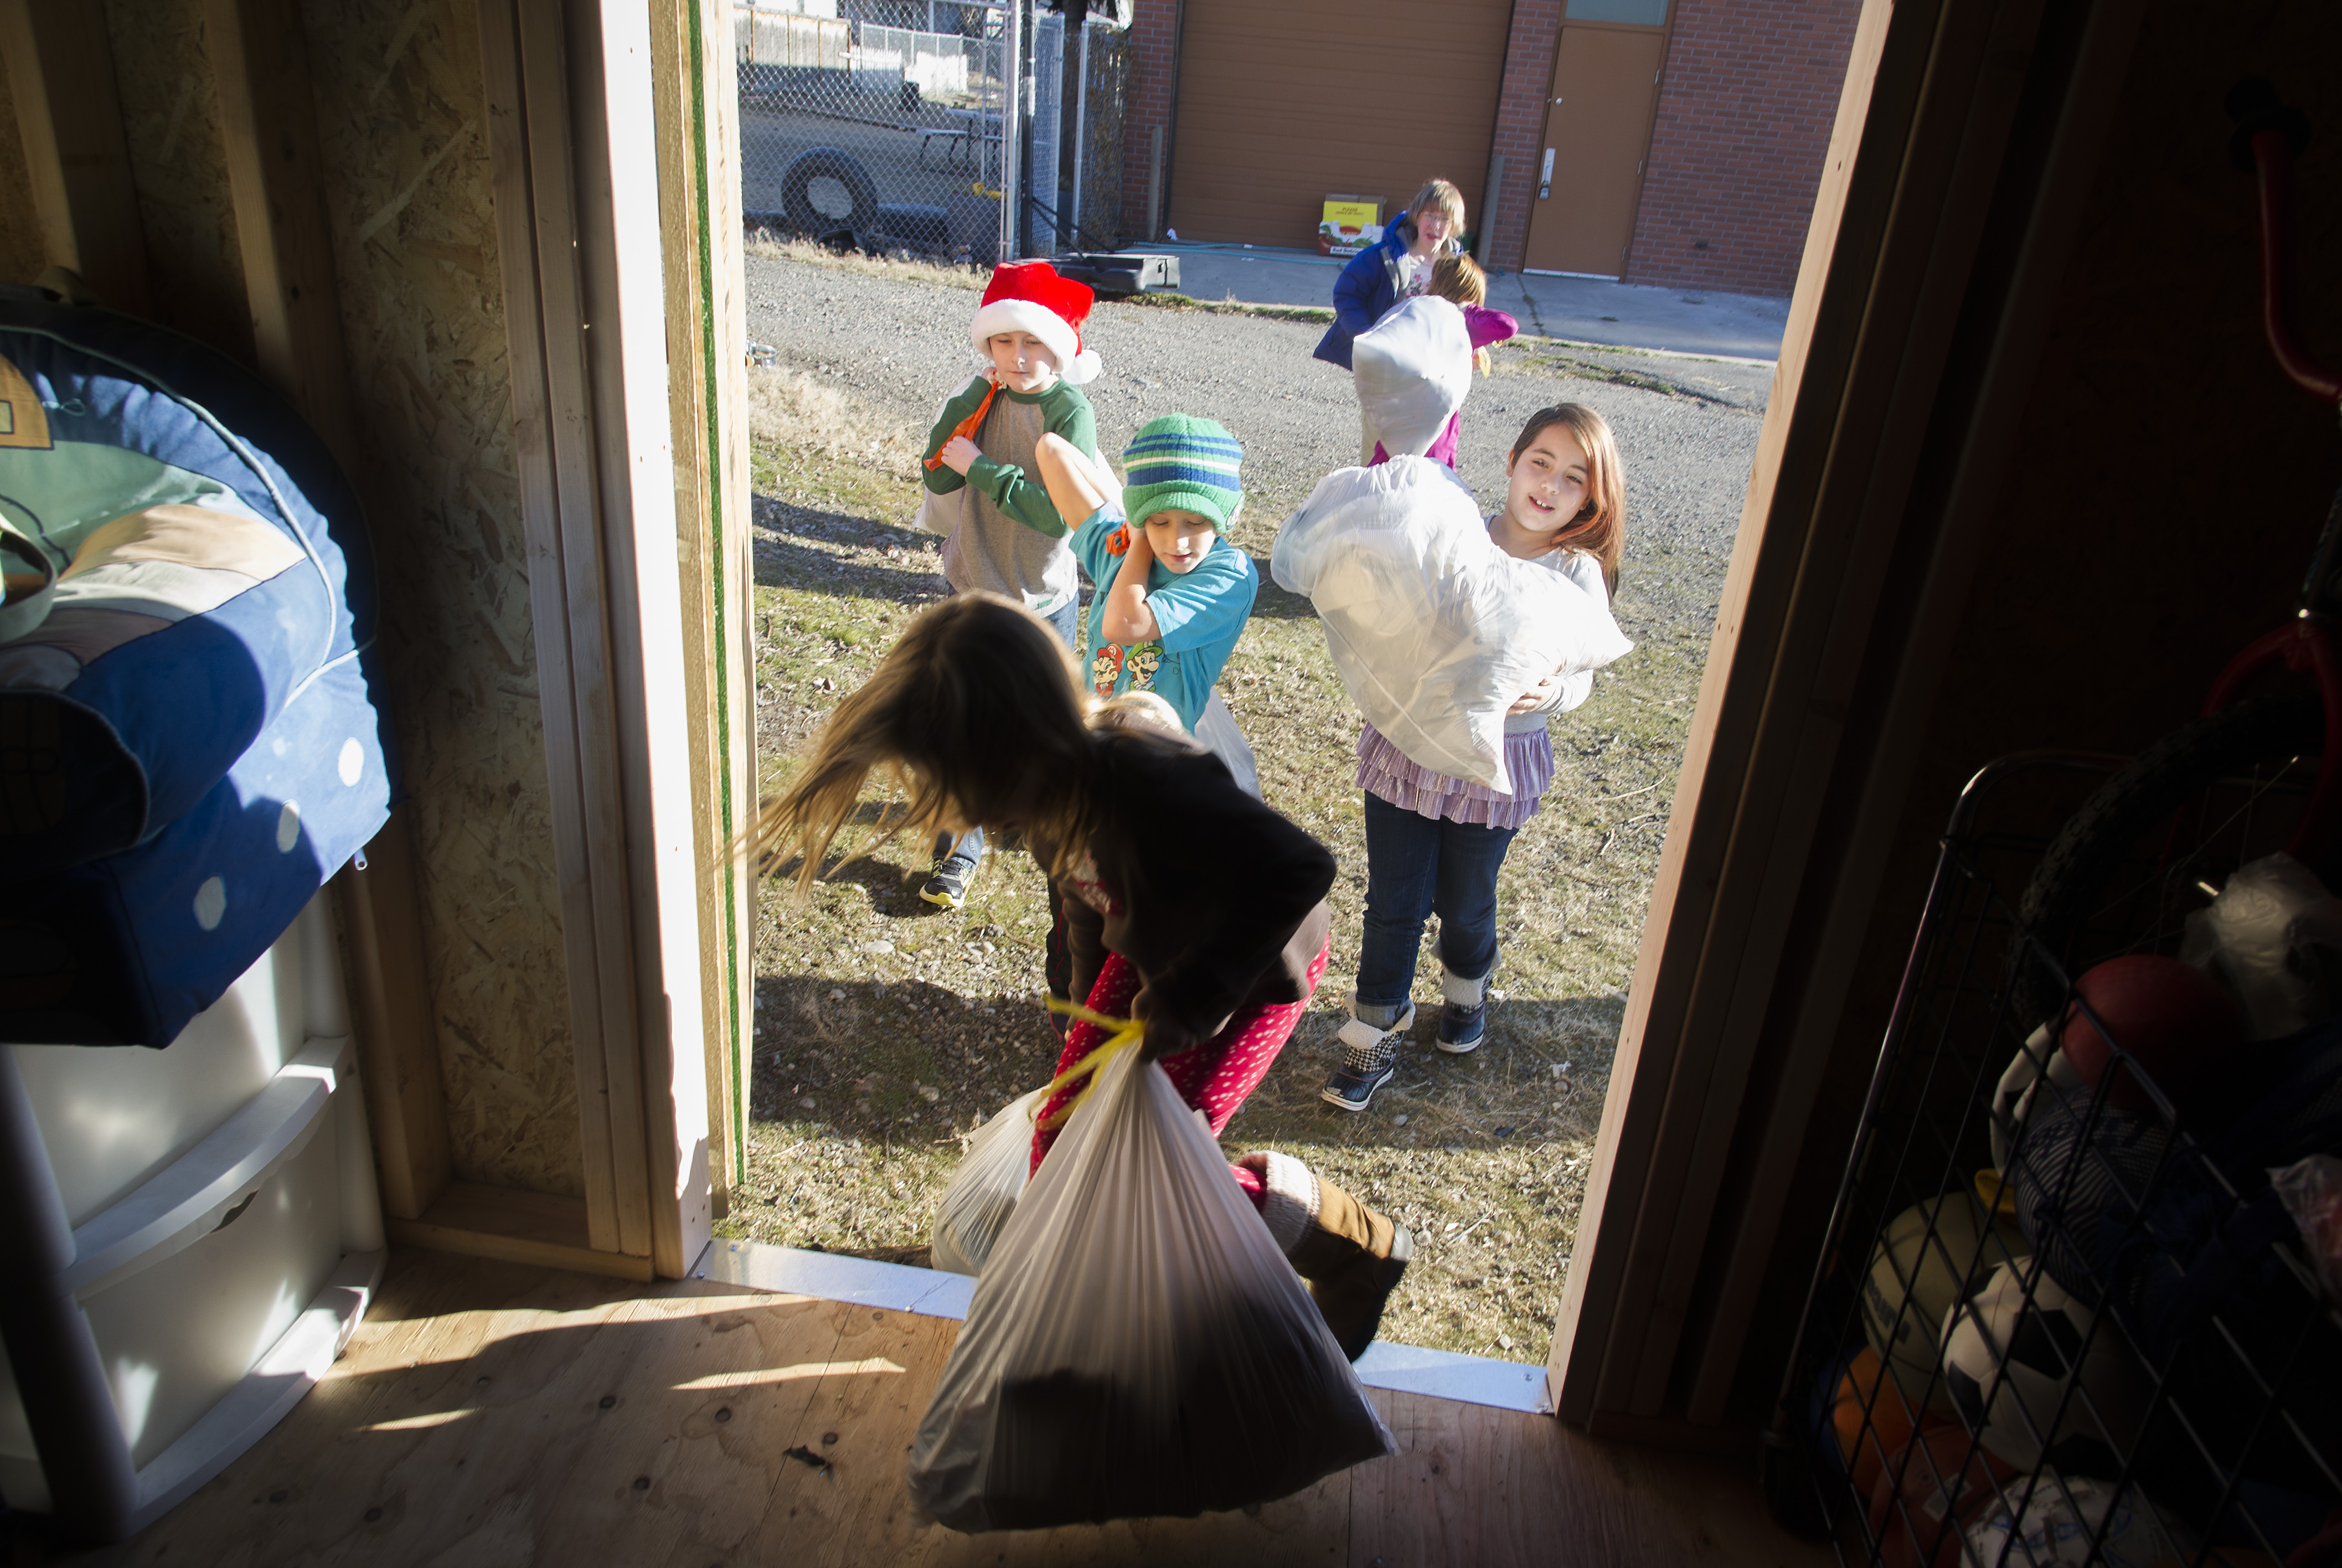 Students learn about recycling, repurposing through textile drive   The Spokesman-Review